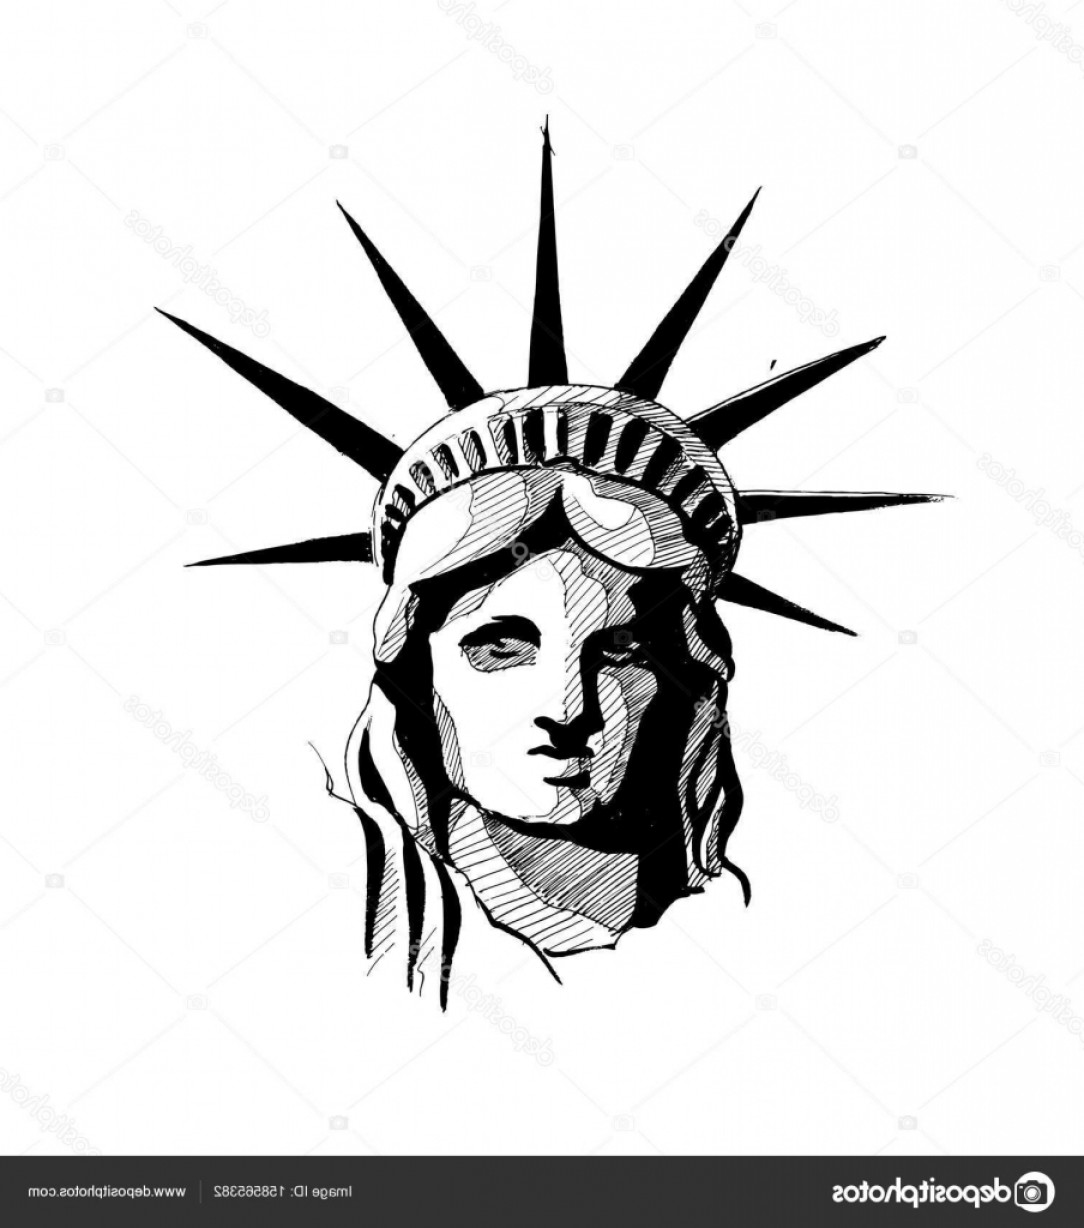 Statue Of Liberty Face Vector: Stock Illustration Statue Of Liberty Hand Drawn